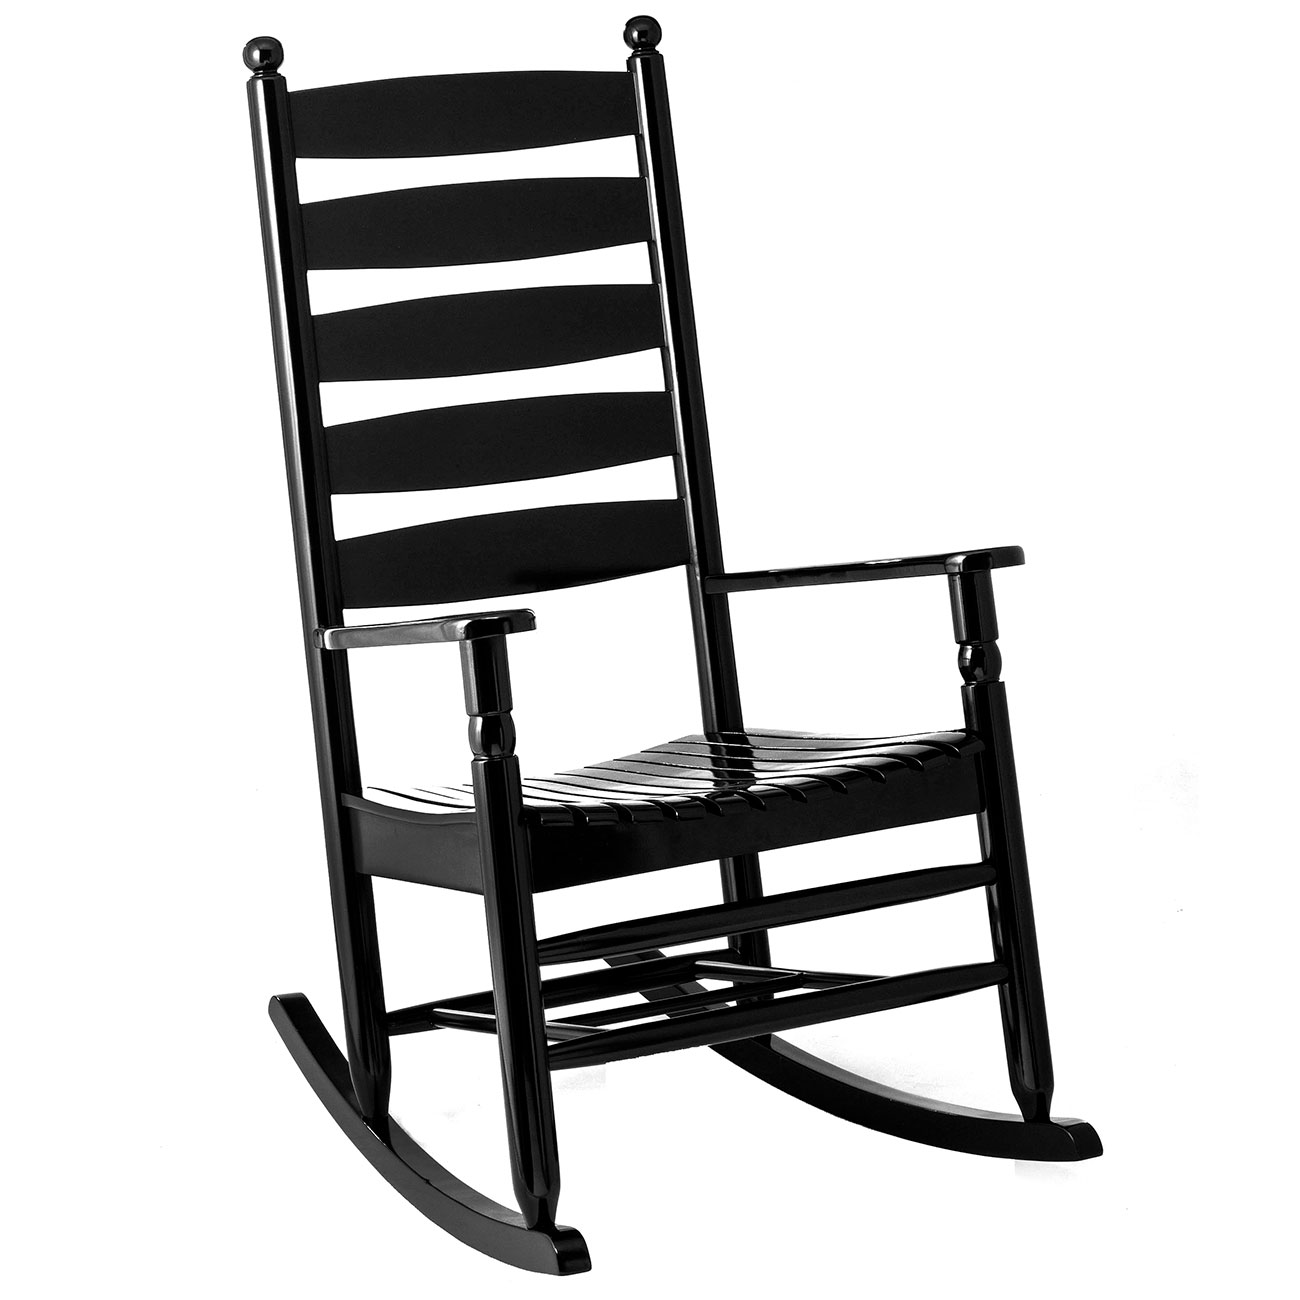 rocking chairs outdoor furniture home furniture cracker barrel old country store